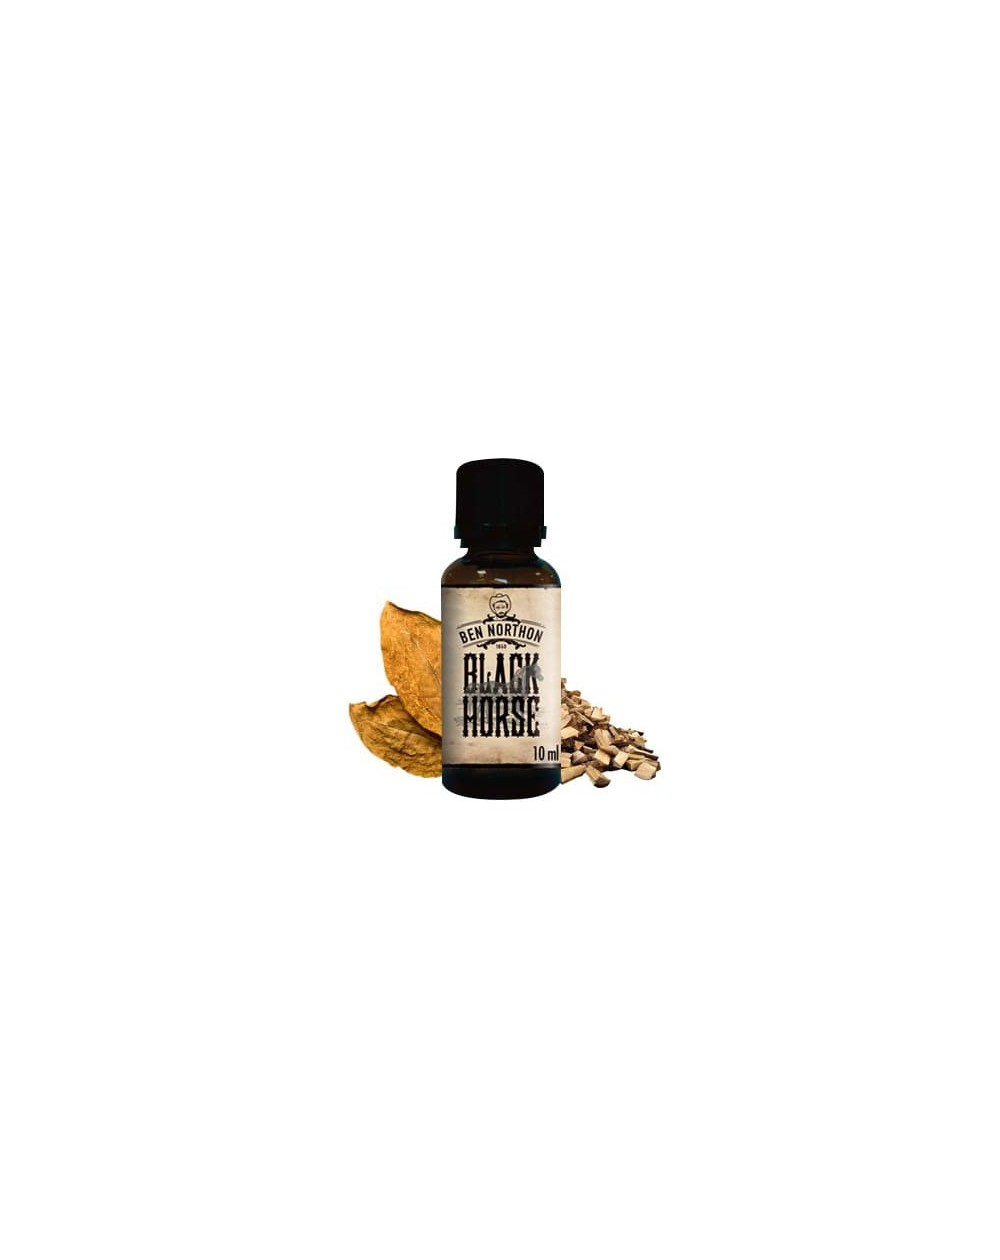 Black Horse 10ml - Ben Northon-1